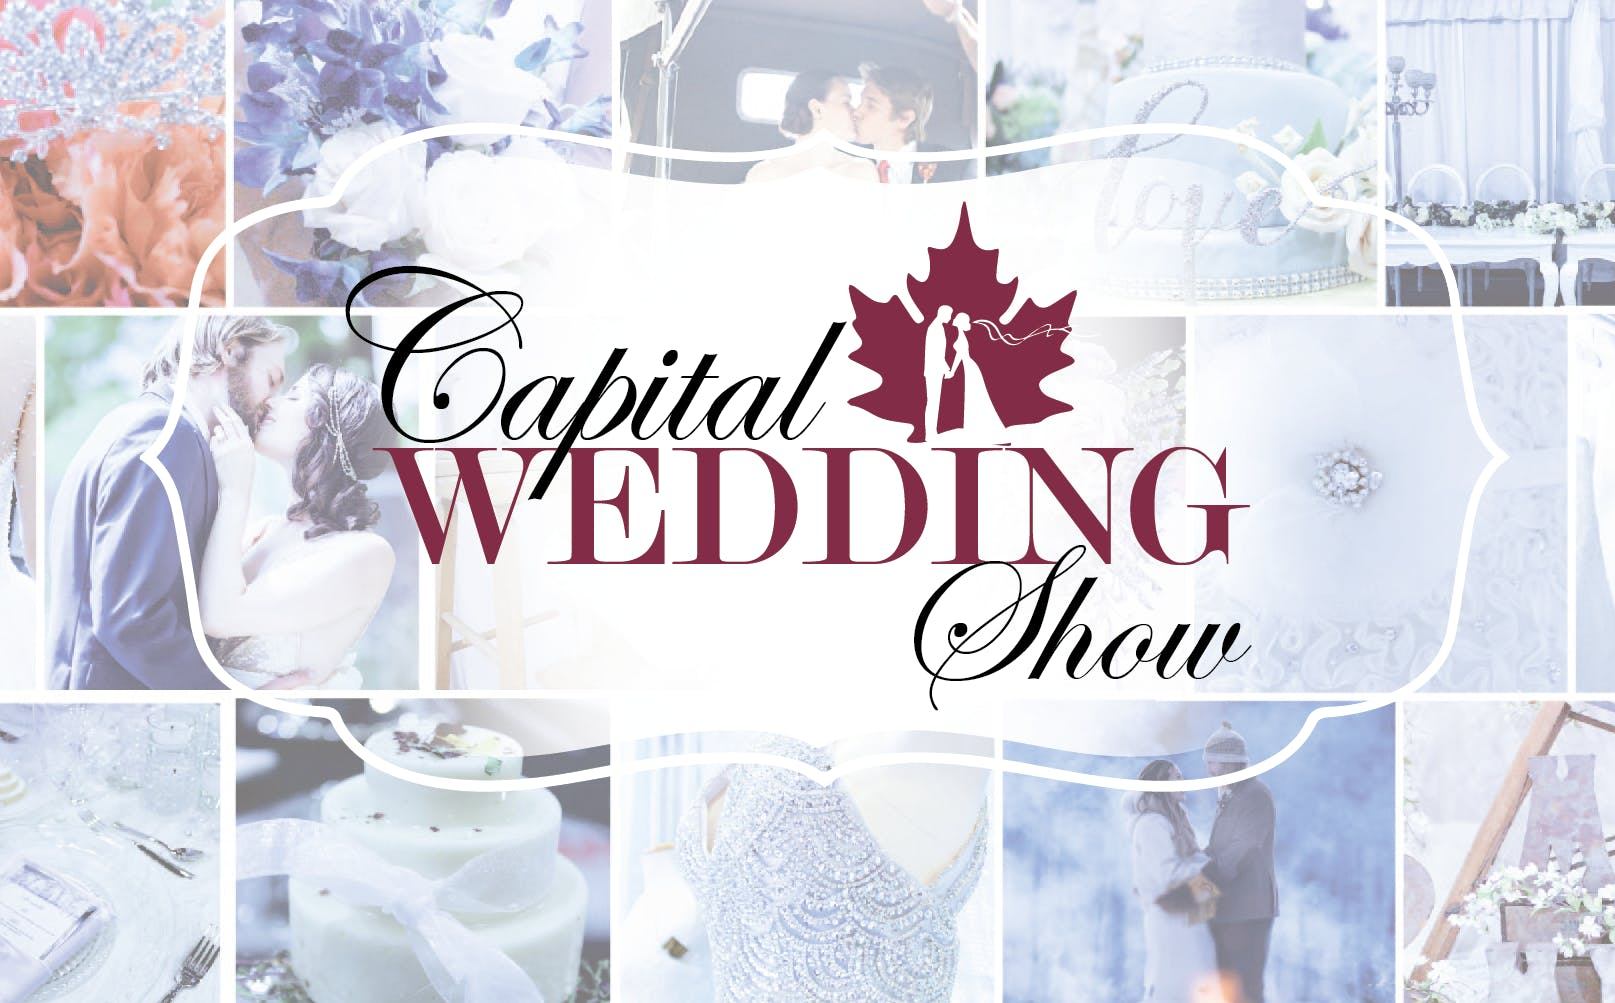 Capital Wedding Show at Shaw Centre - Two Day General Admission